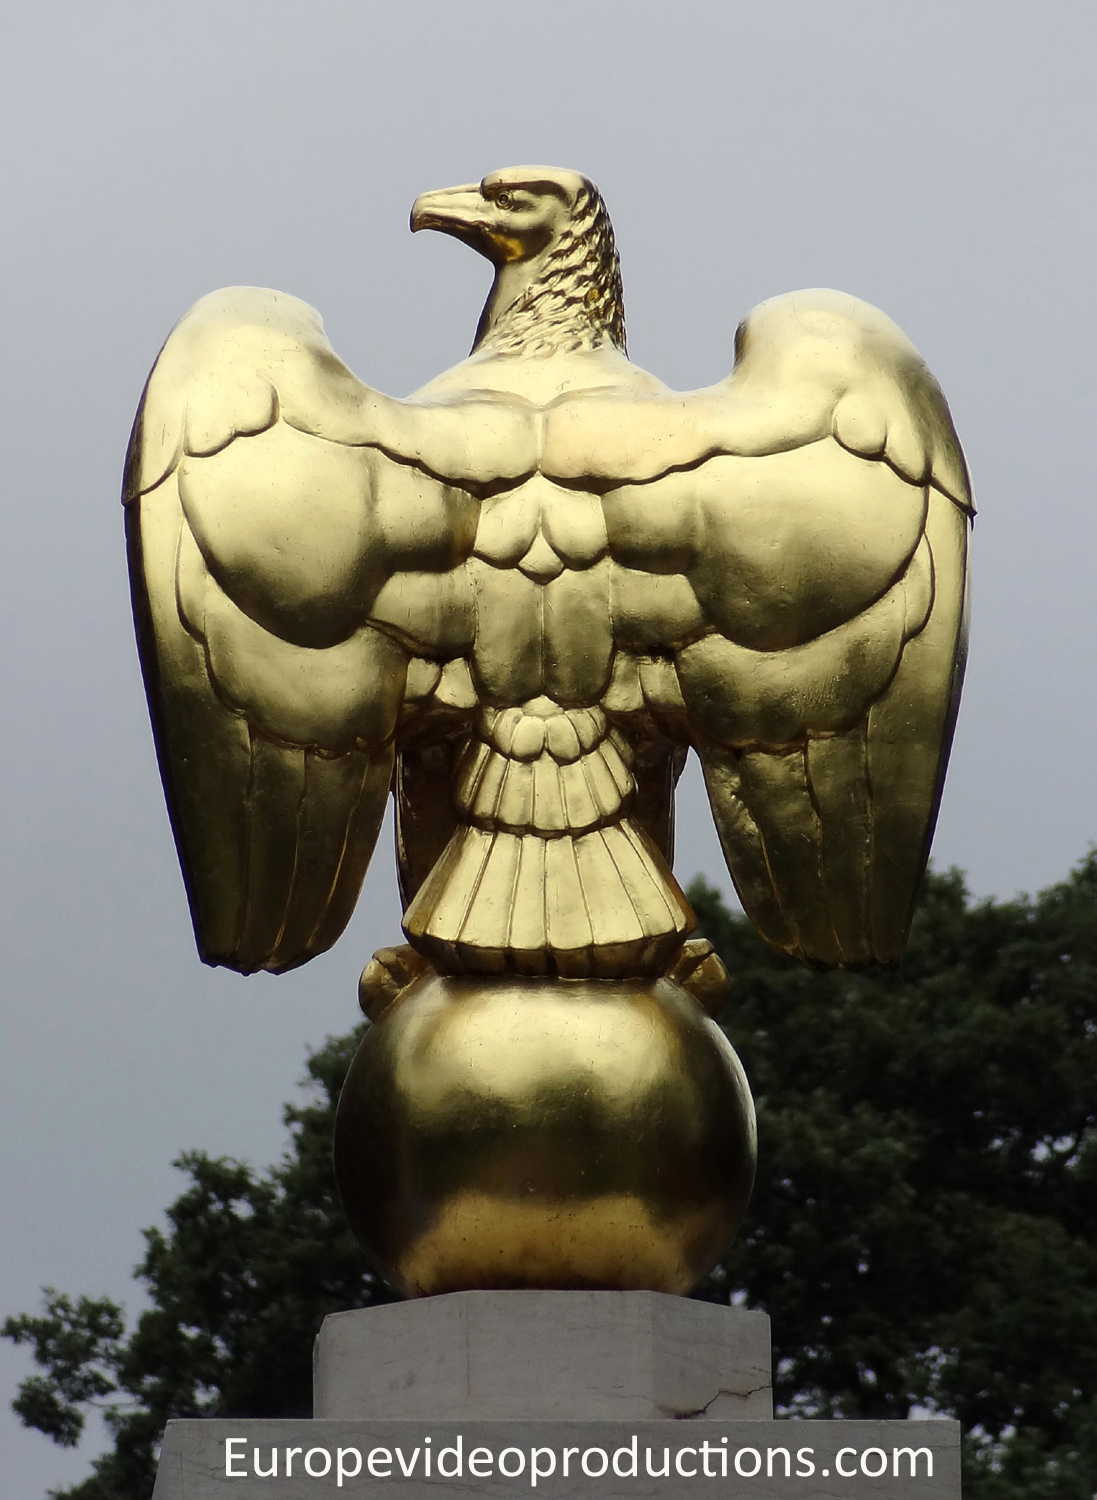 Eagle in Luxembourg American Military Cemetery